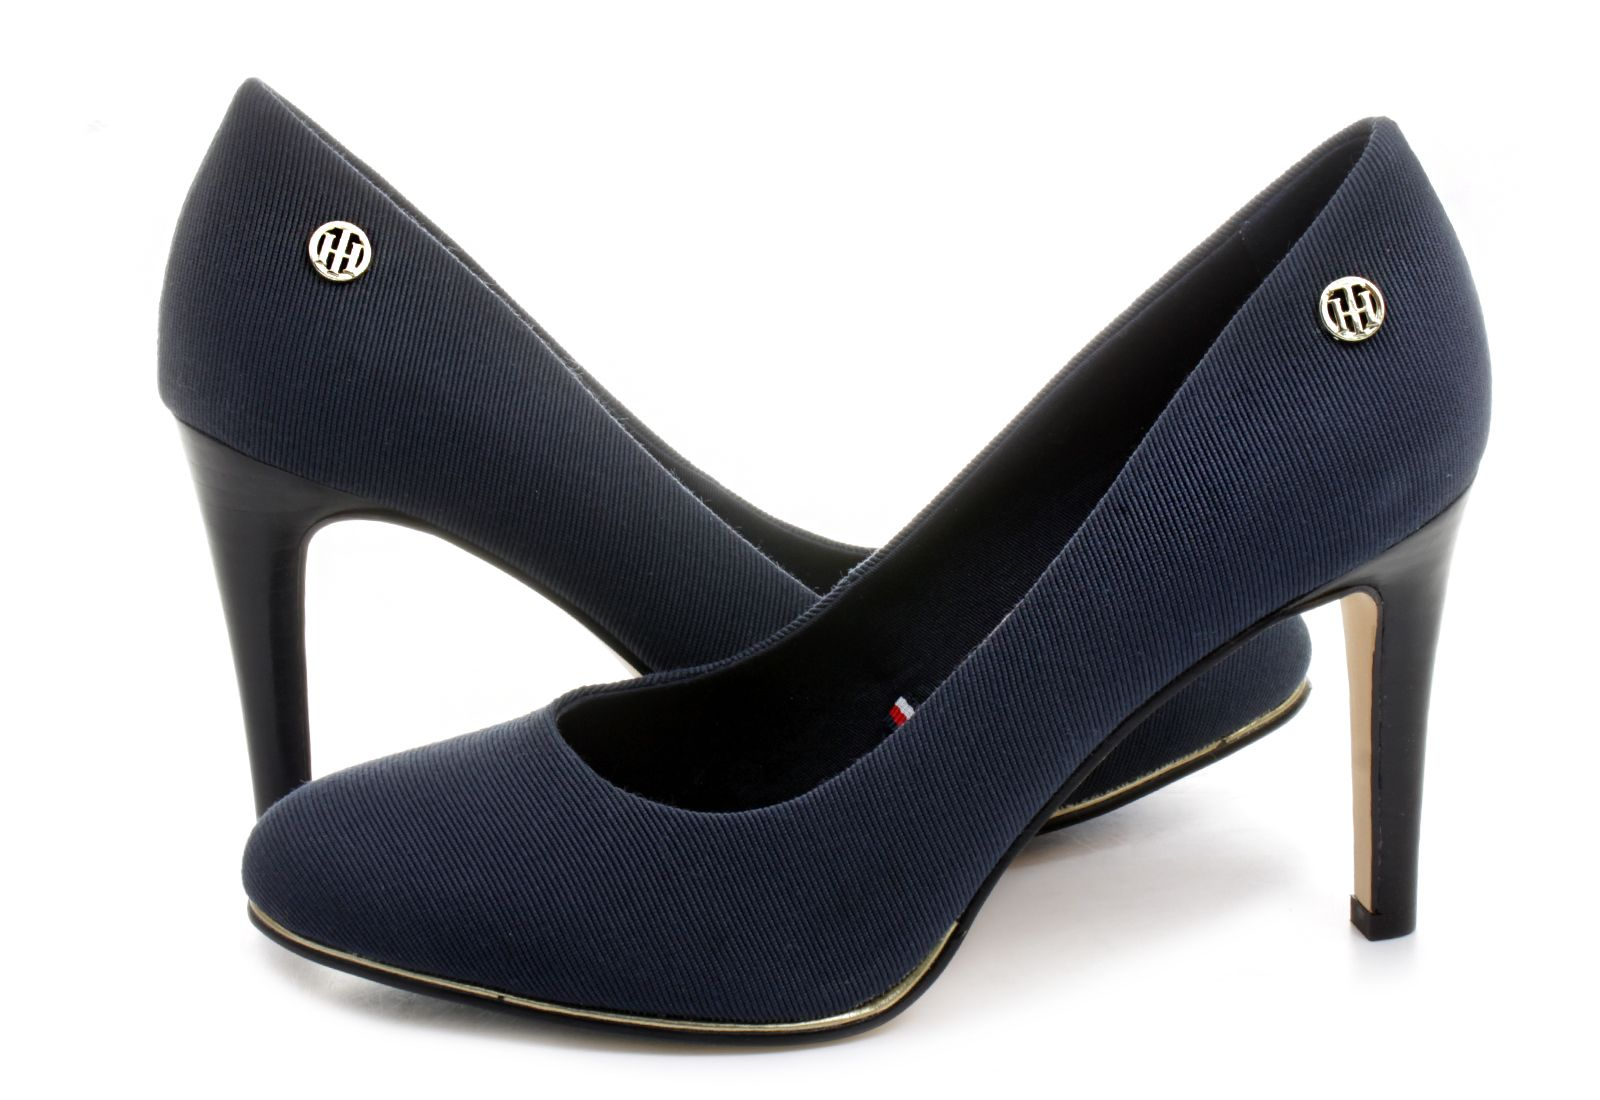 e7f0a09c56f205 Tommy Hilfiger High Heels - Layla 27d - 17S-0288-403 - Online shop ...